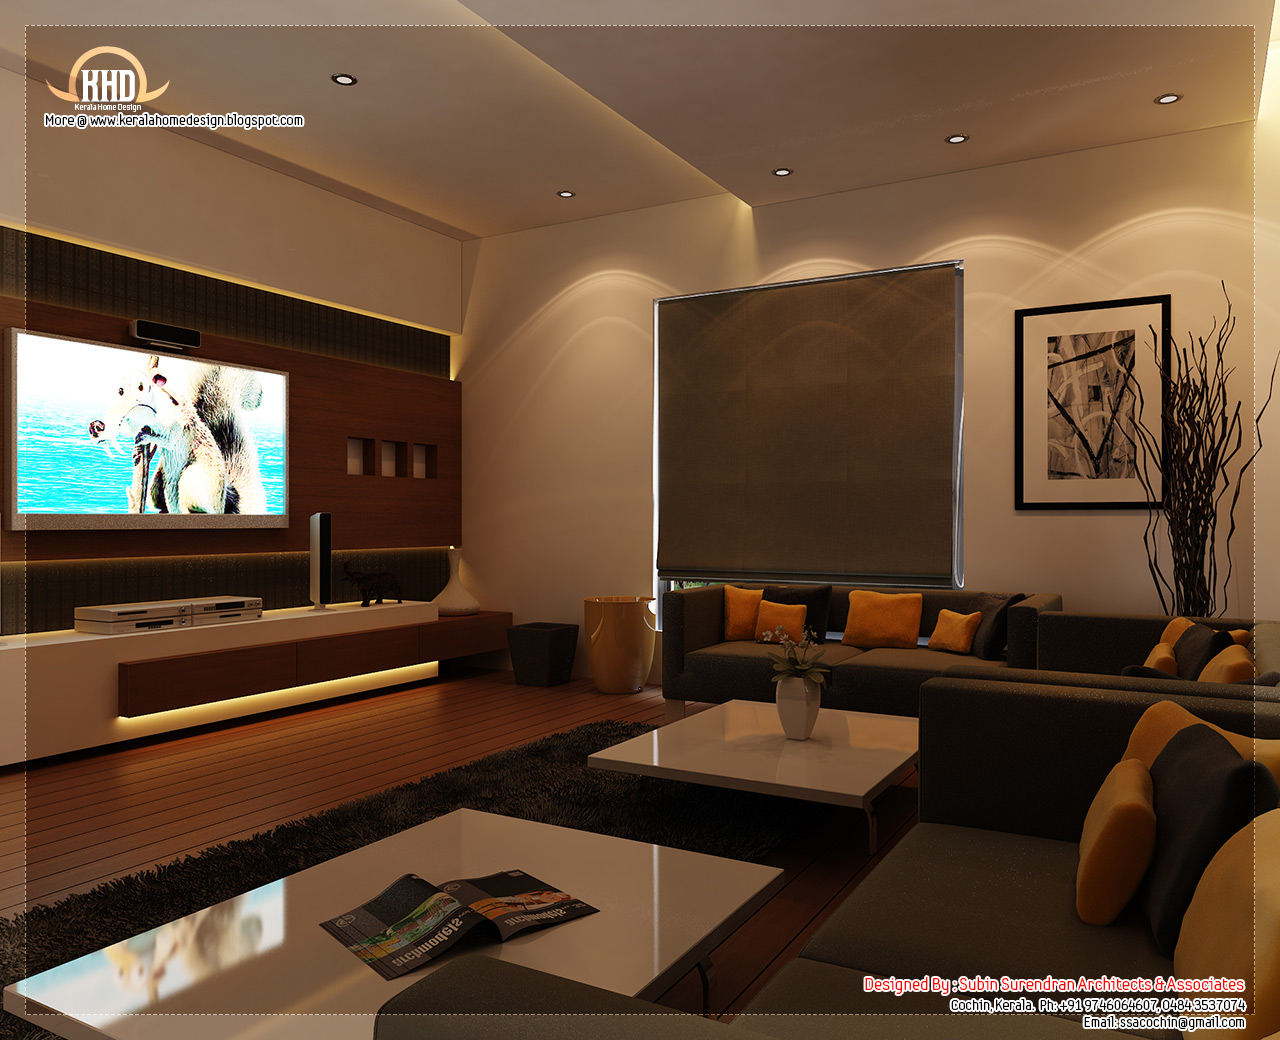 Beautiful home interior designs kerala home design and for Interior design ideas living room indian style